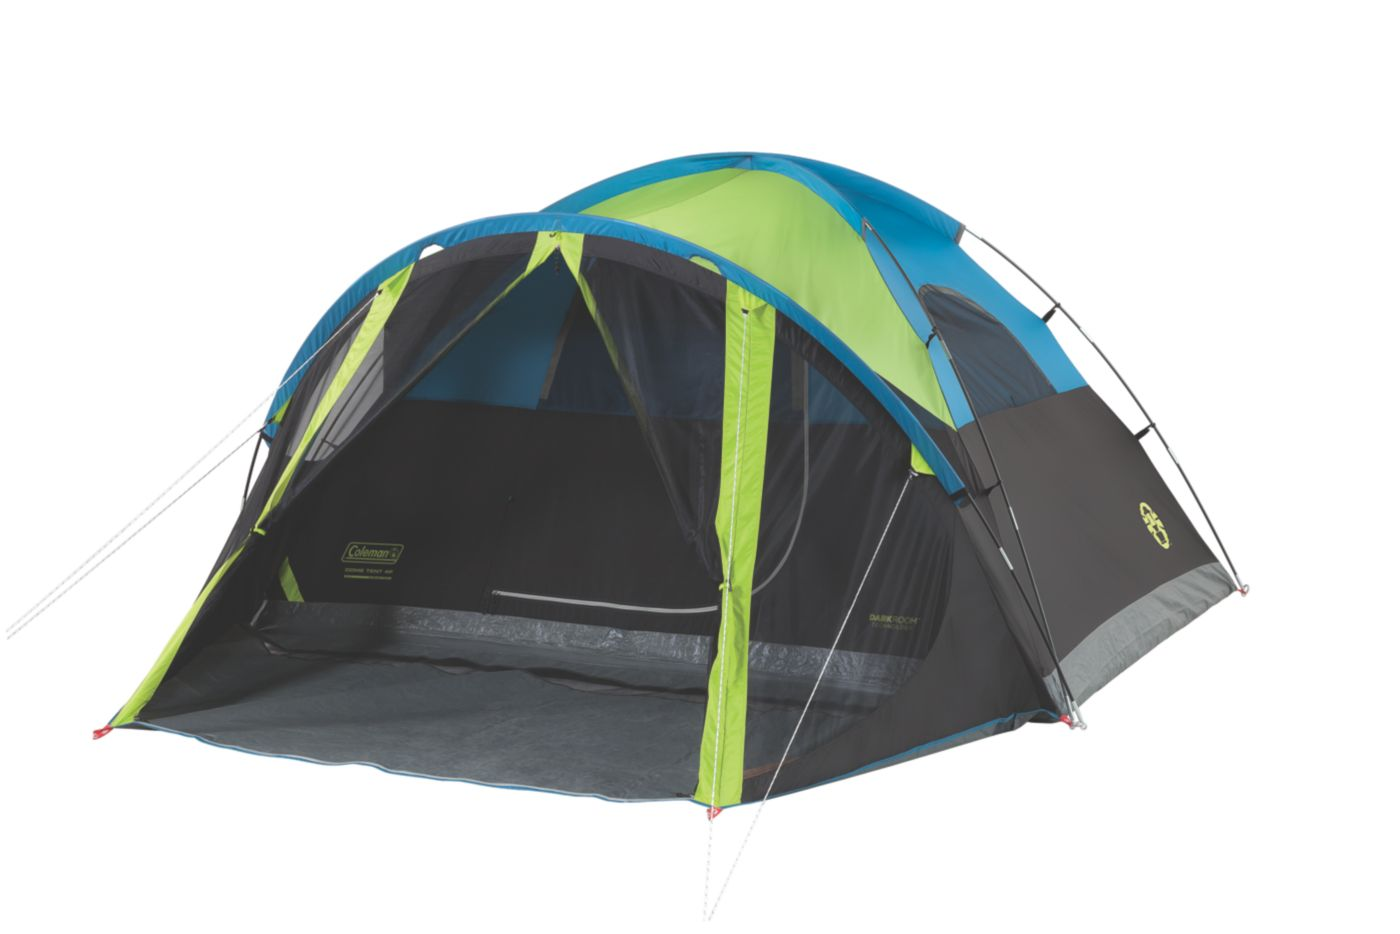 ... Carlsbad™ 4-Person Dark Room Tent with Screen ...  sc 1 st  Coleman & Tents for Camping | 4 Person Dome Tent | Coleman